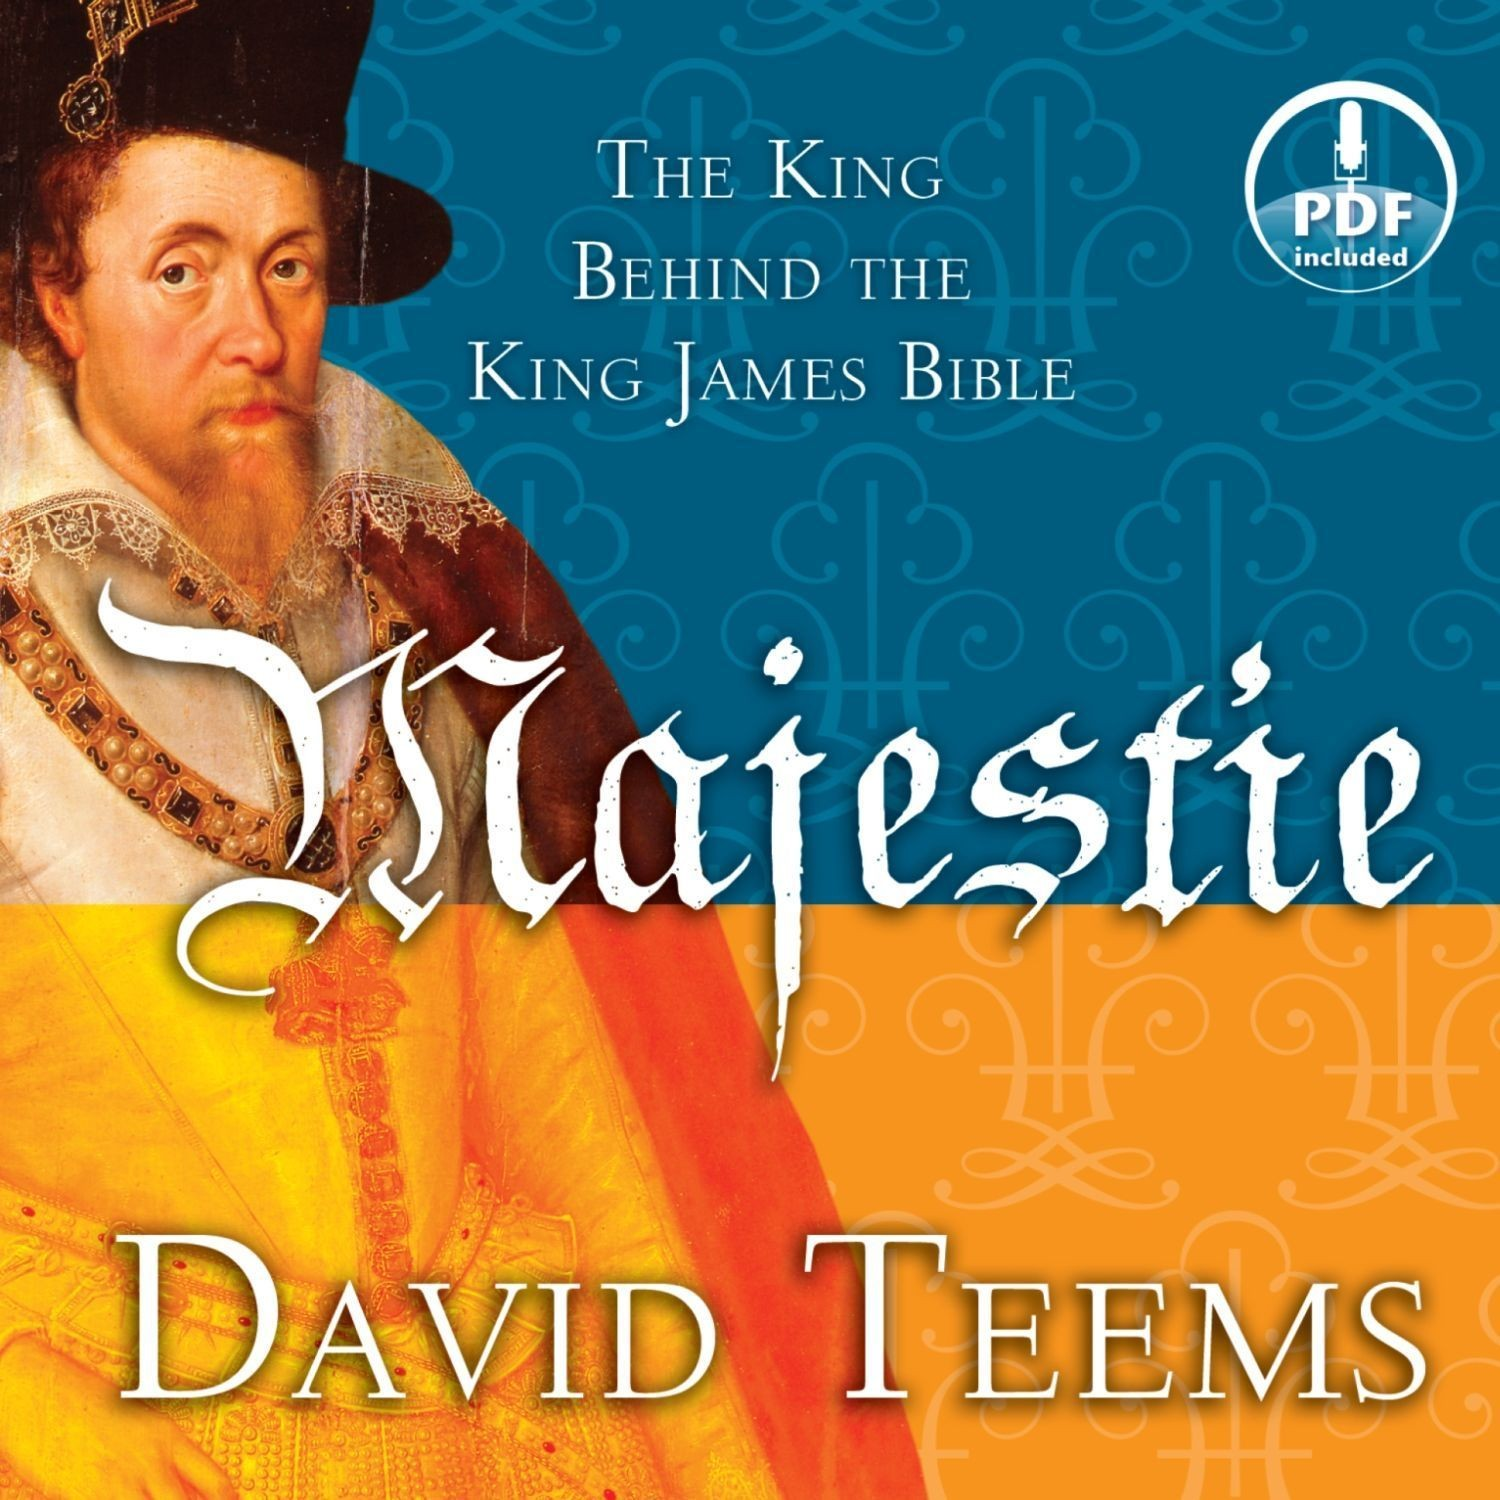 Printable Majestie: The King behind the King James Bible Audiobook Cover Art